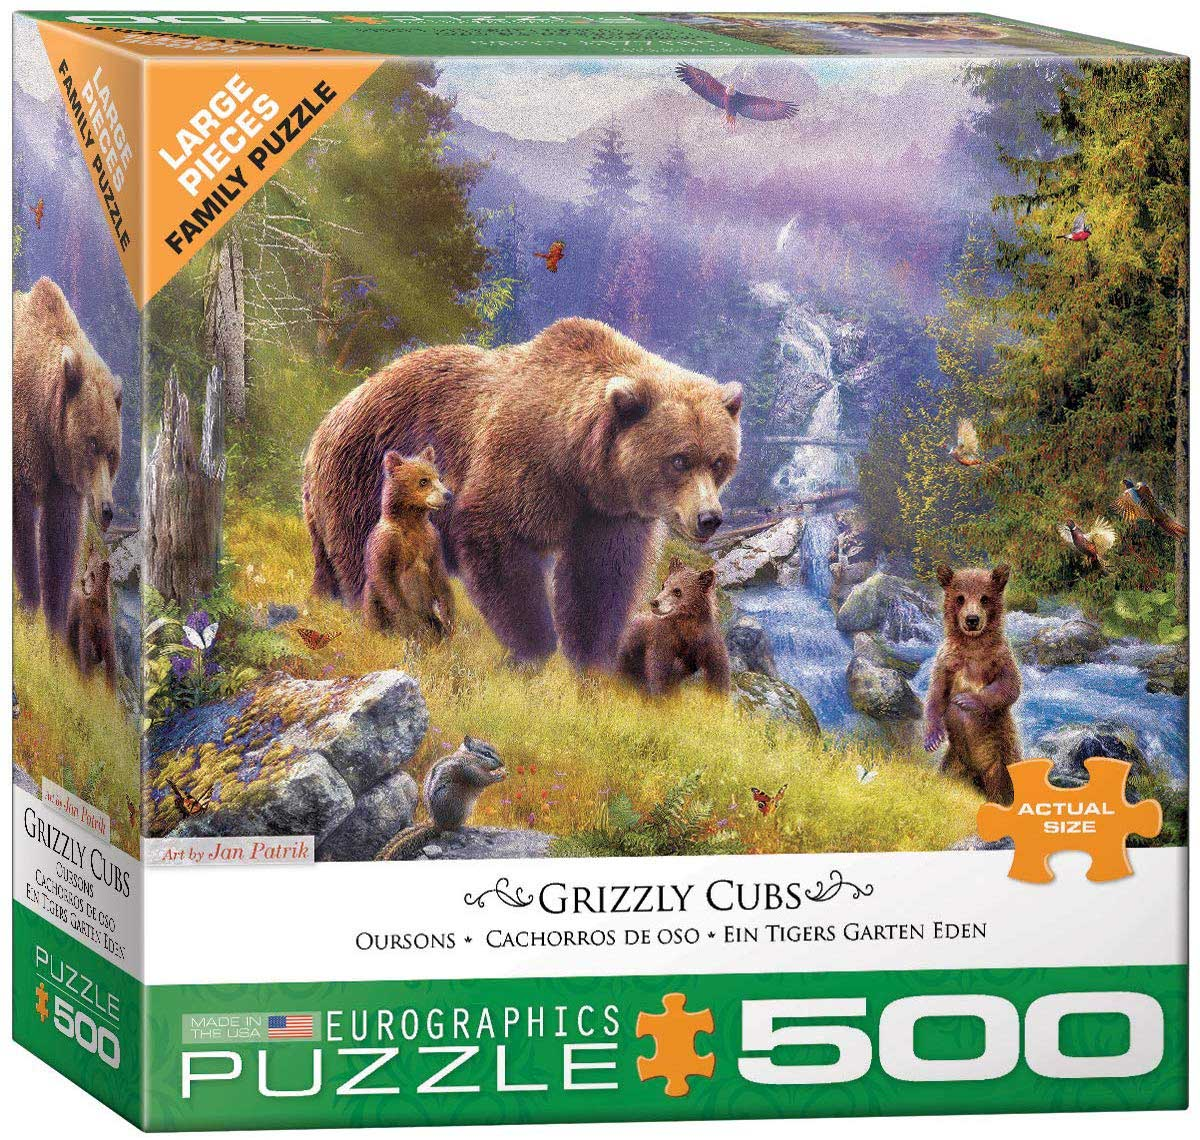 Grizzly Cubs Bears Jigsaw Puzzle